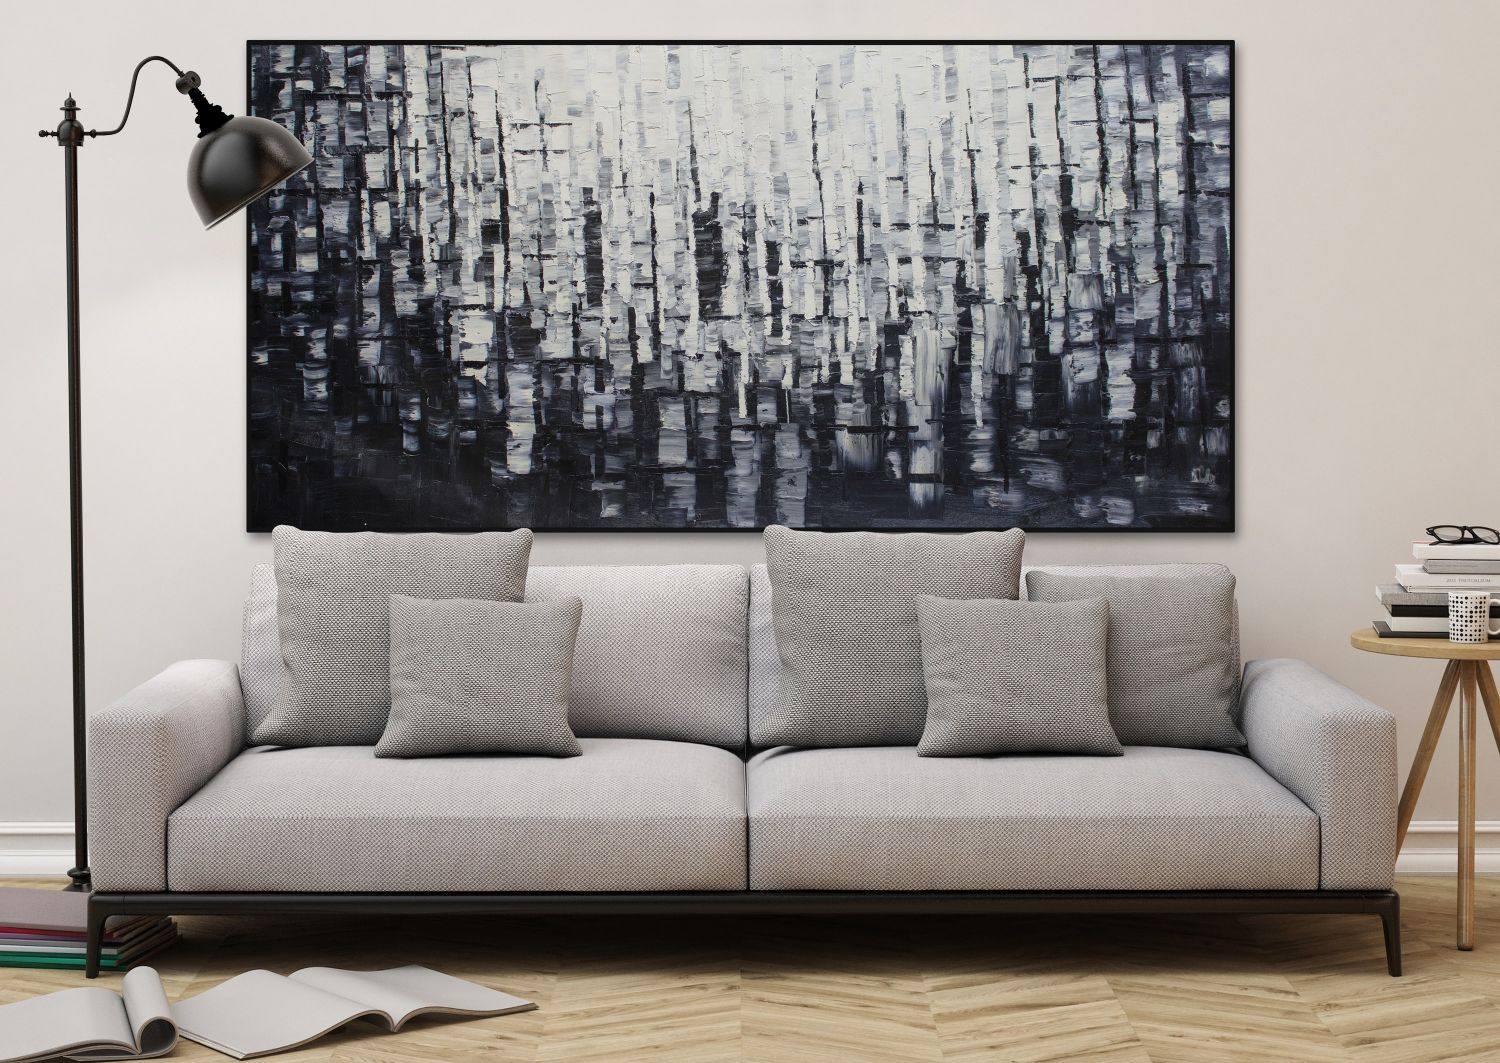 l gem lde 39 abstrakt licht schwarz weiss xxl 39 handgemalt leinwand bilder 2 ebay. Black Bedroom Furniture Sets. Home Design Ideas